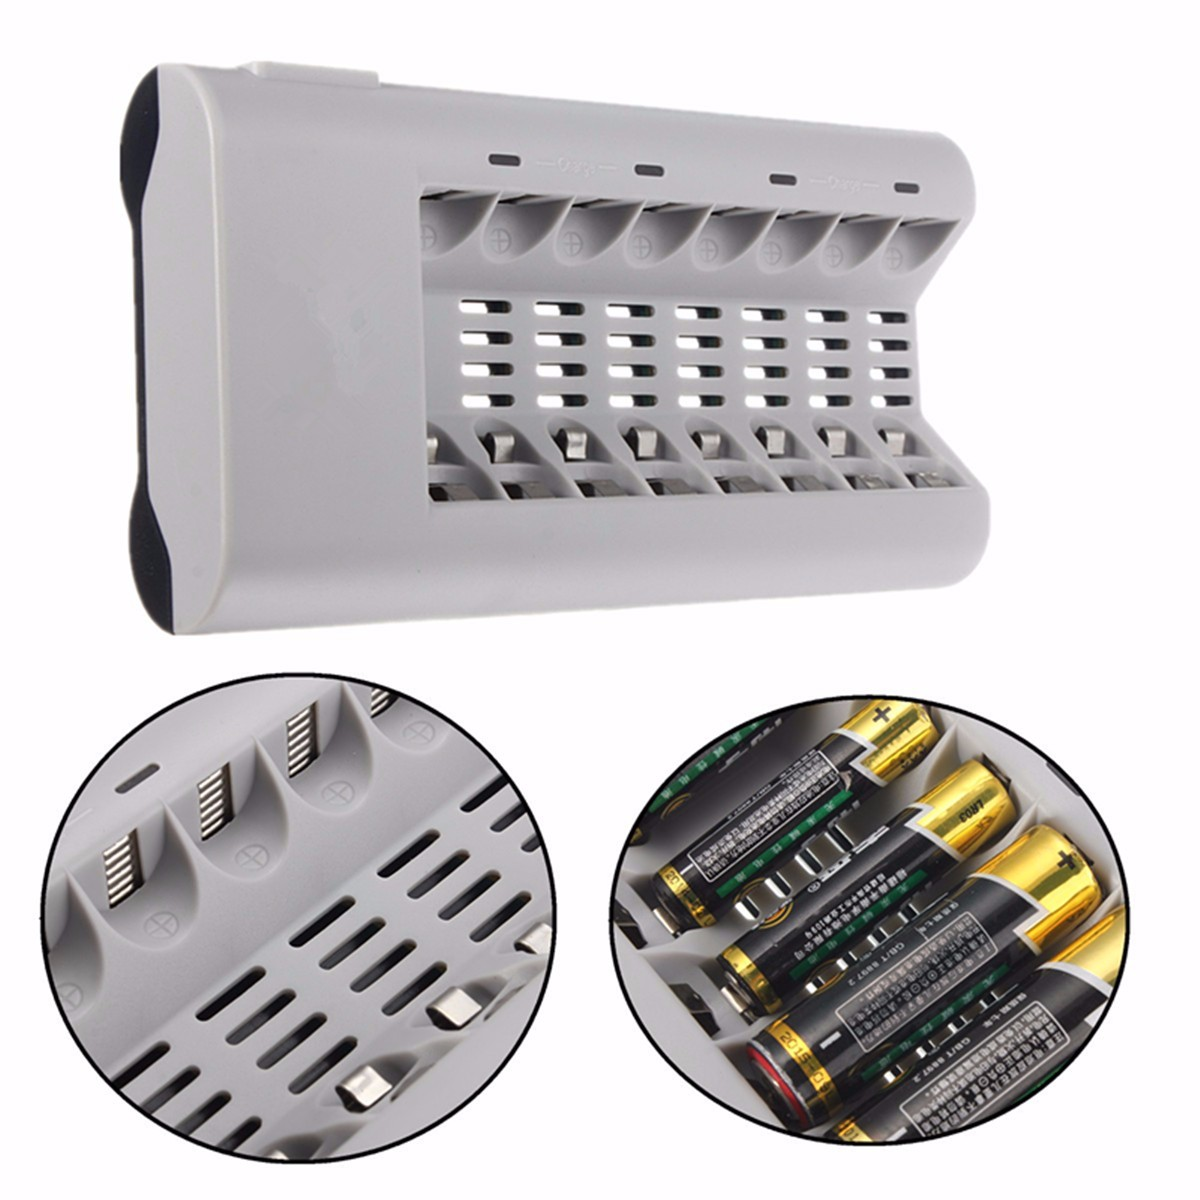 8 Slot Intelligent Battery Charger For AA AAA NI-MH NI-